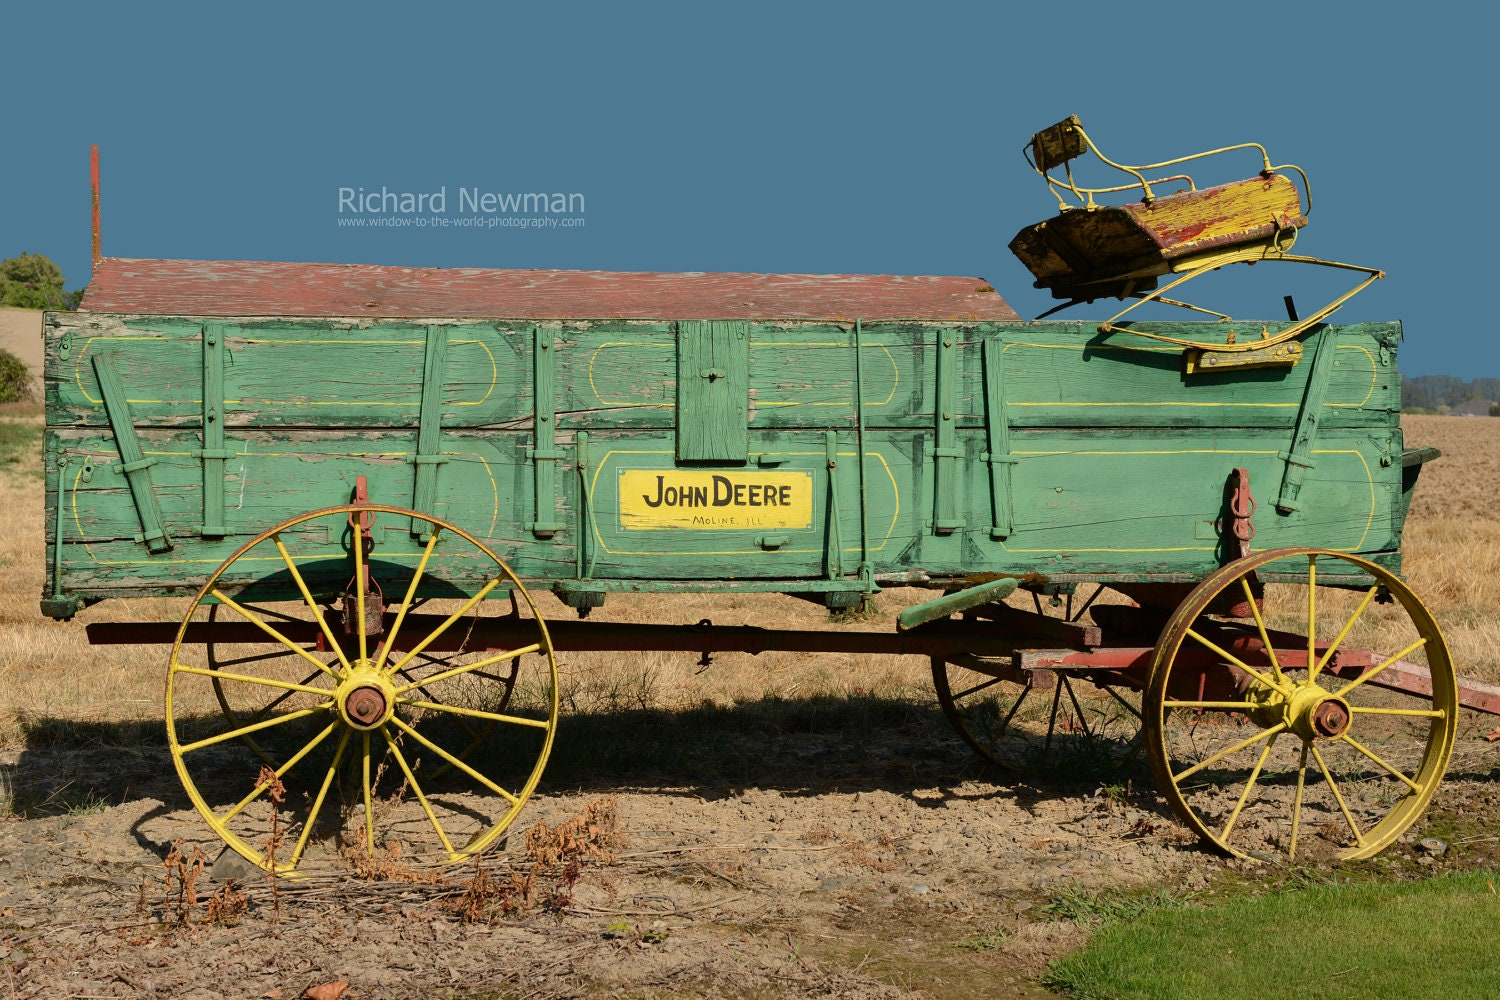 Old John Deere Wagon Farm Equipment Americana Art Old Green